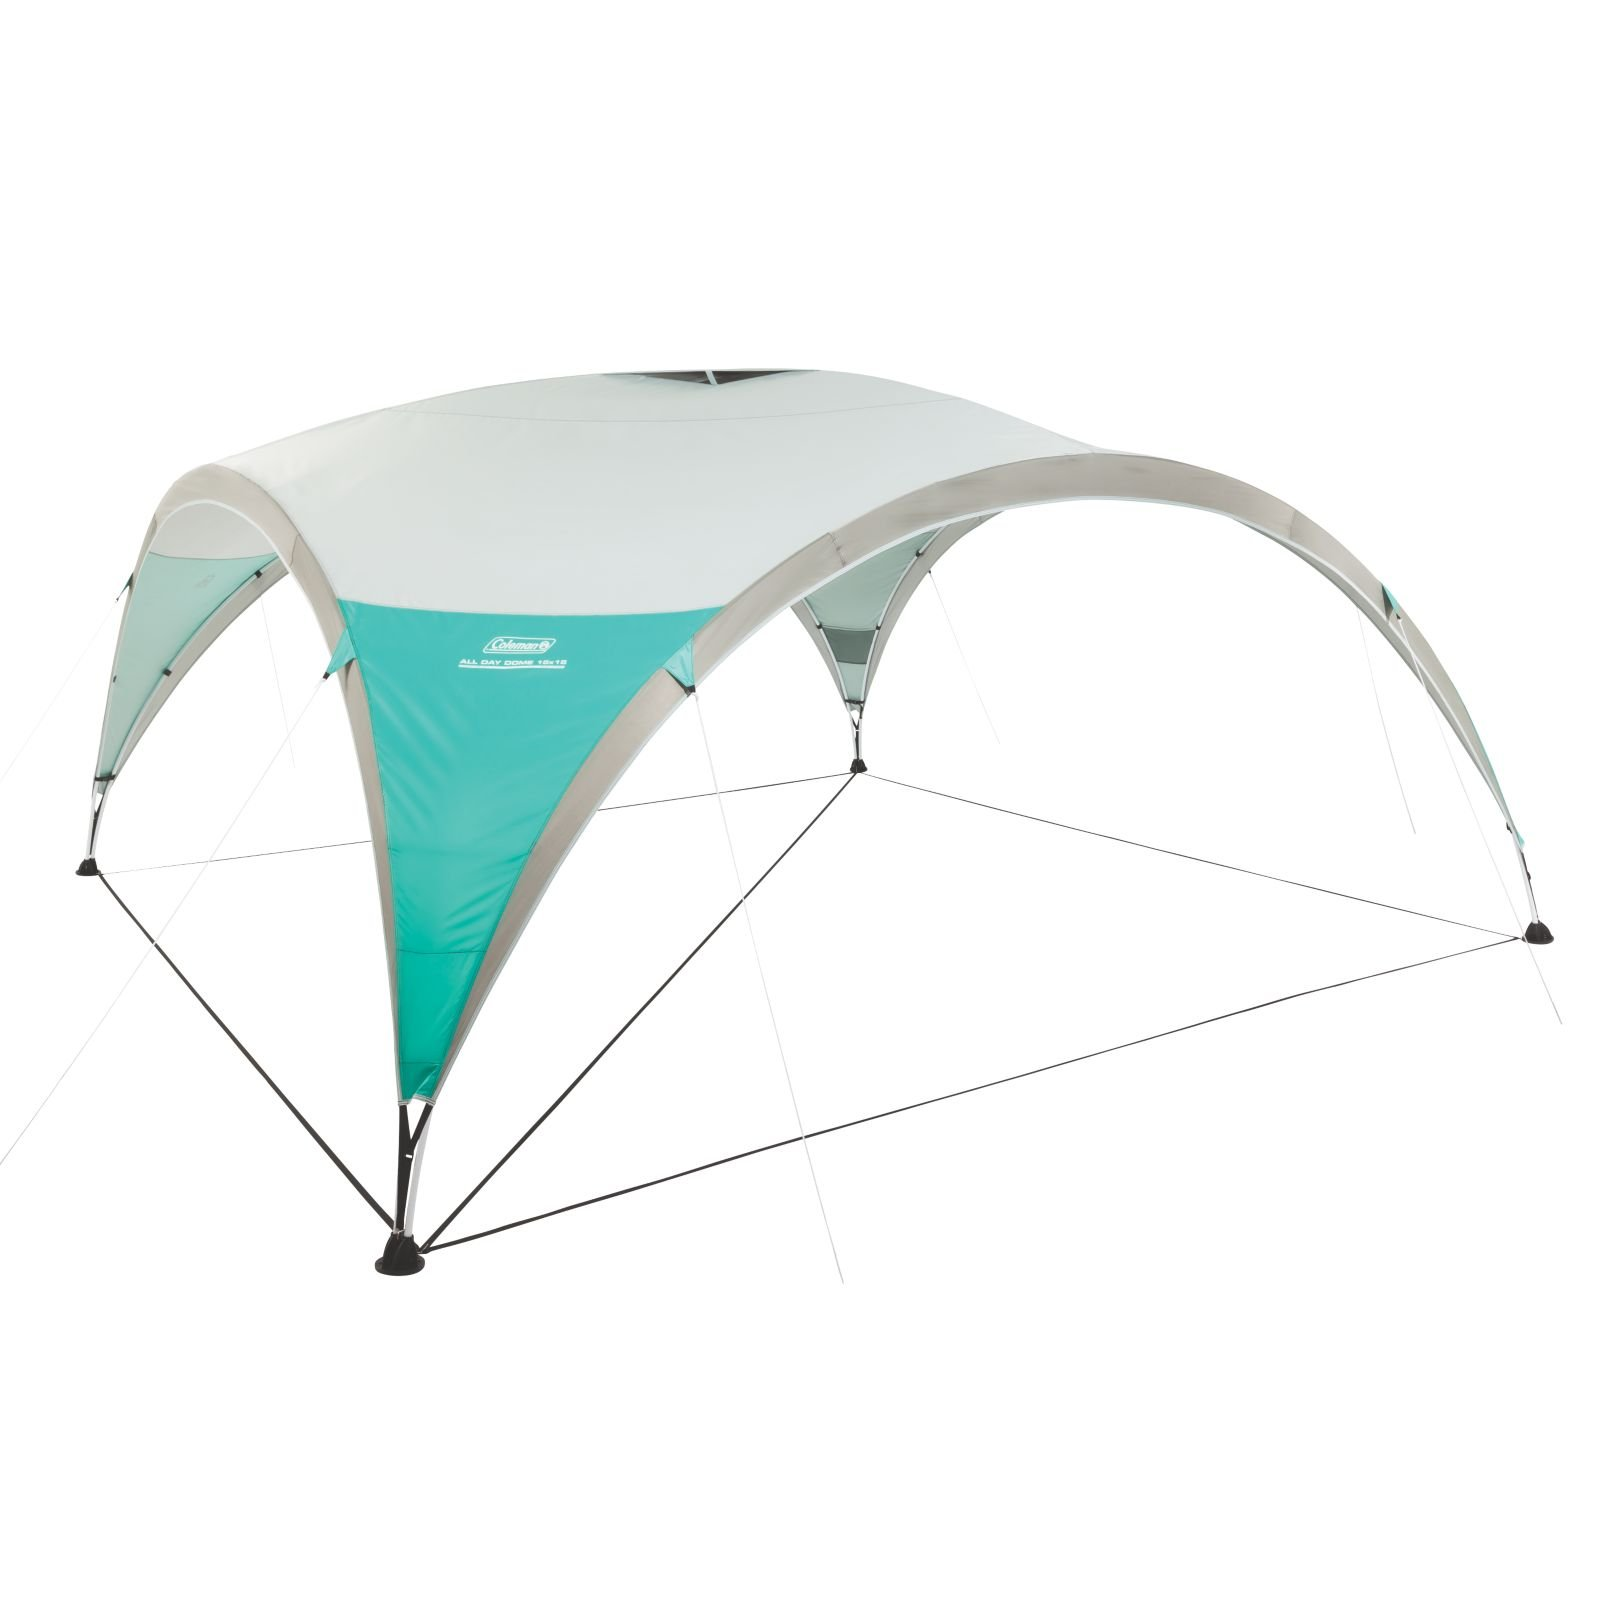 Coleman Point Loma Dome Sun Shelter, 15 x 15 Feet by Coleman (Image #1)